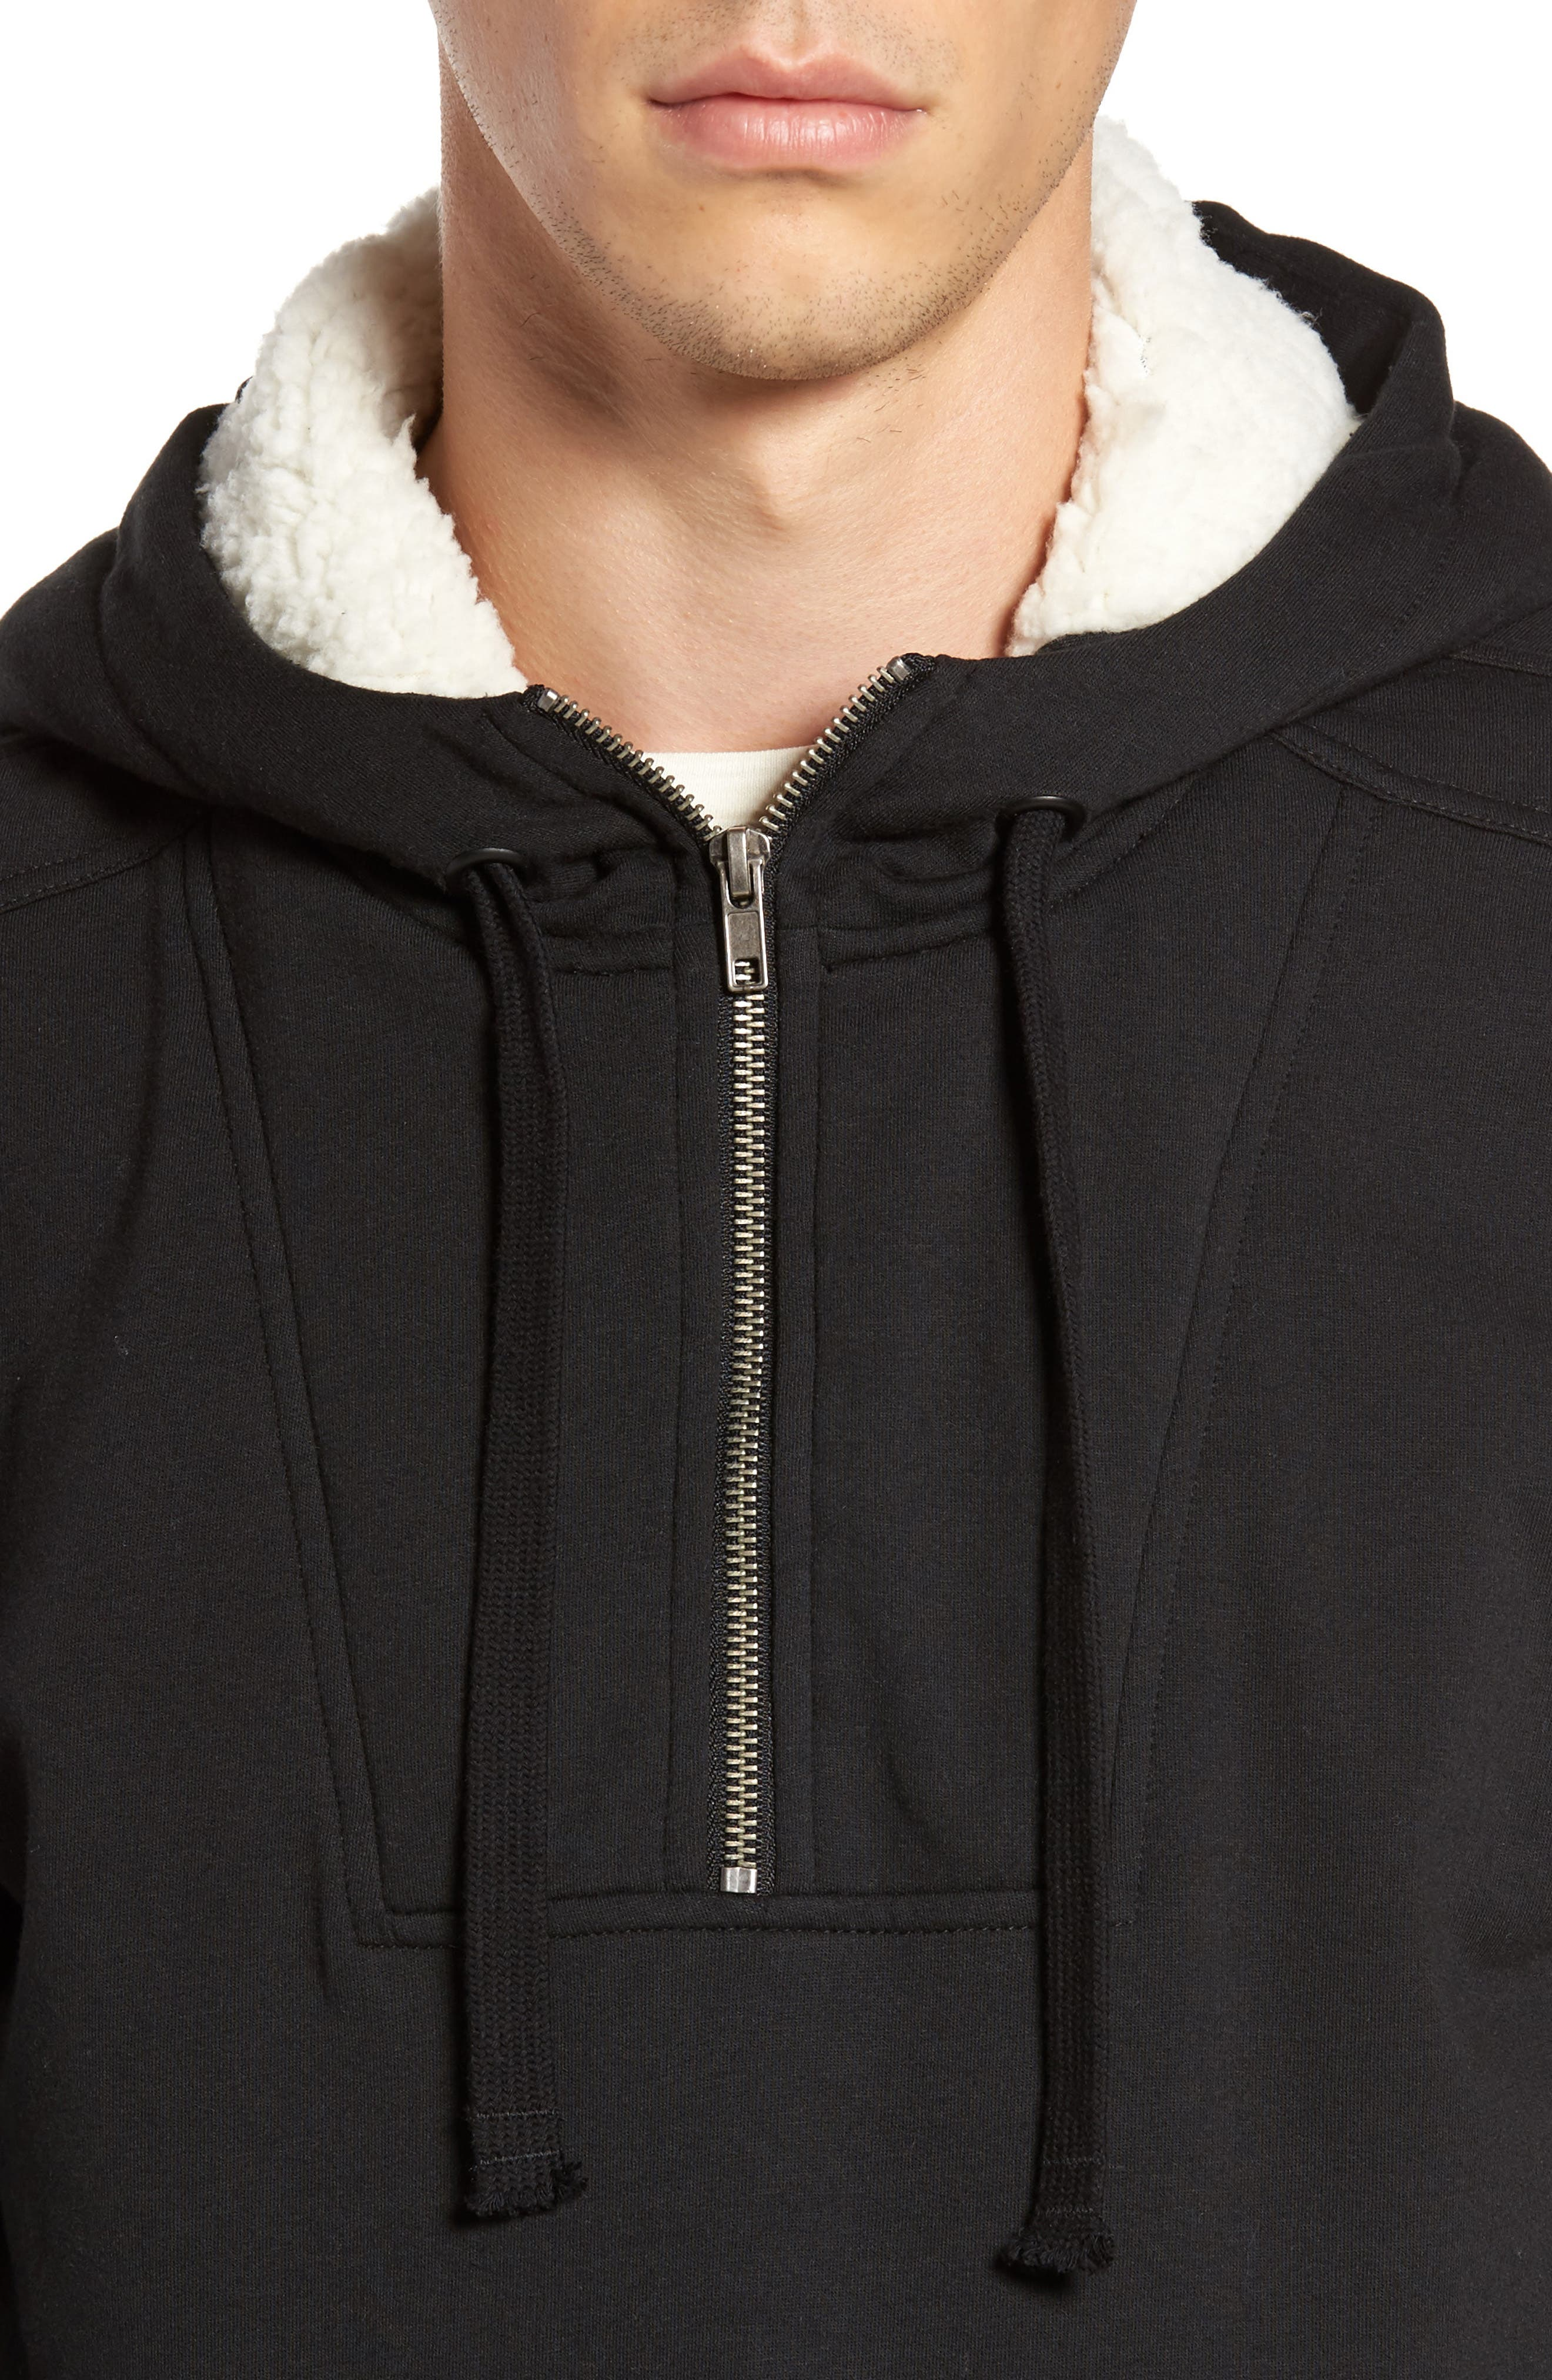 Fleece Lined Hoodie,                             Alternate thumbnail 4, color,                             001